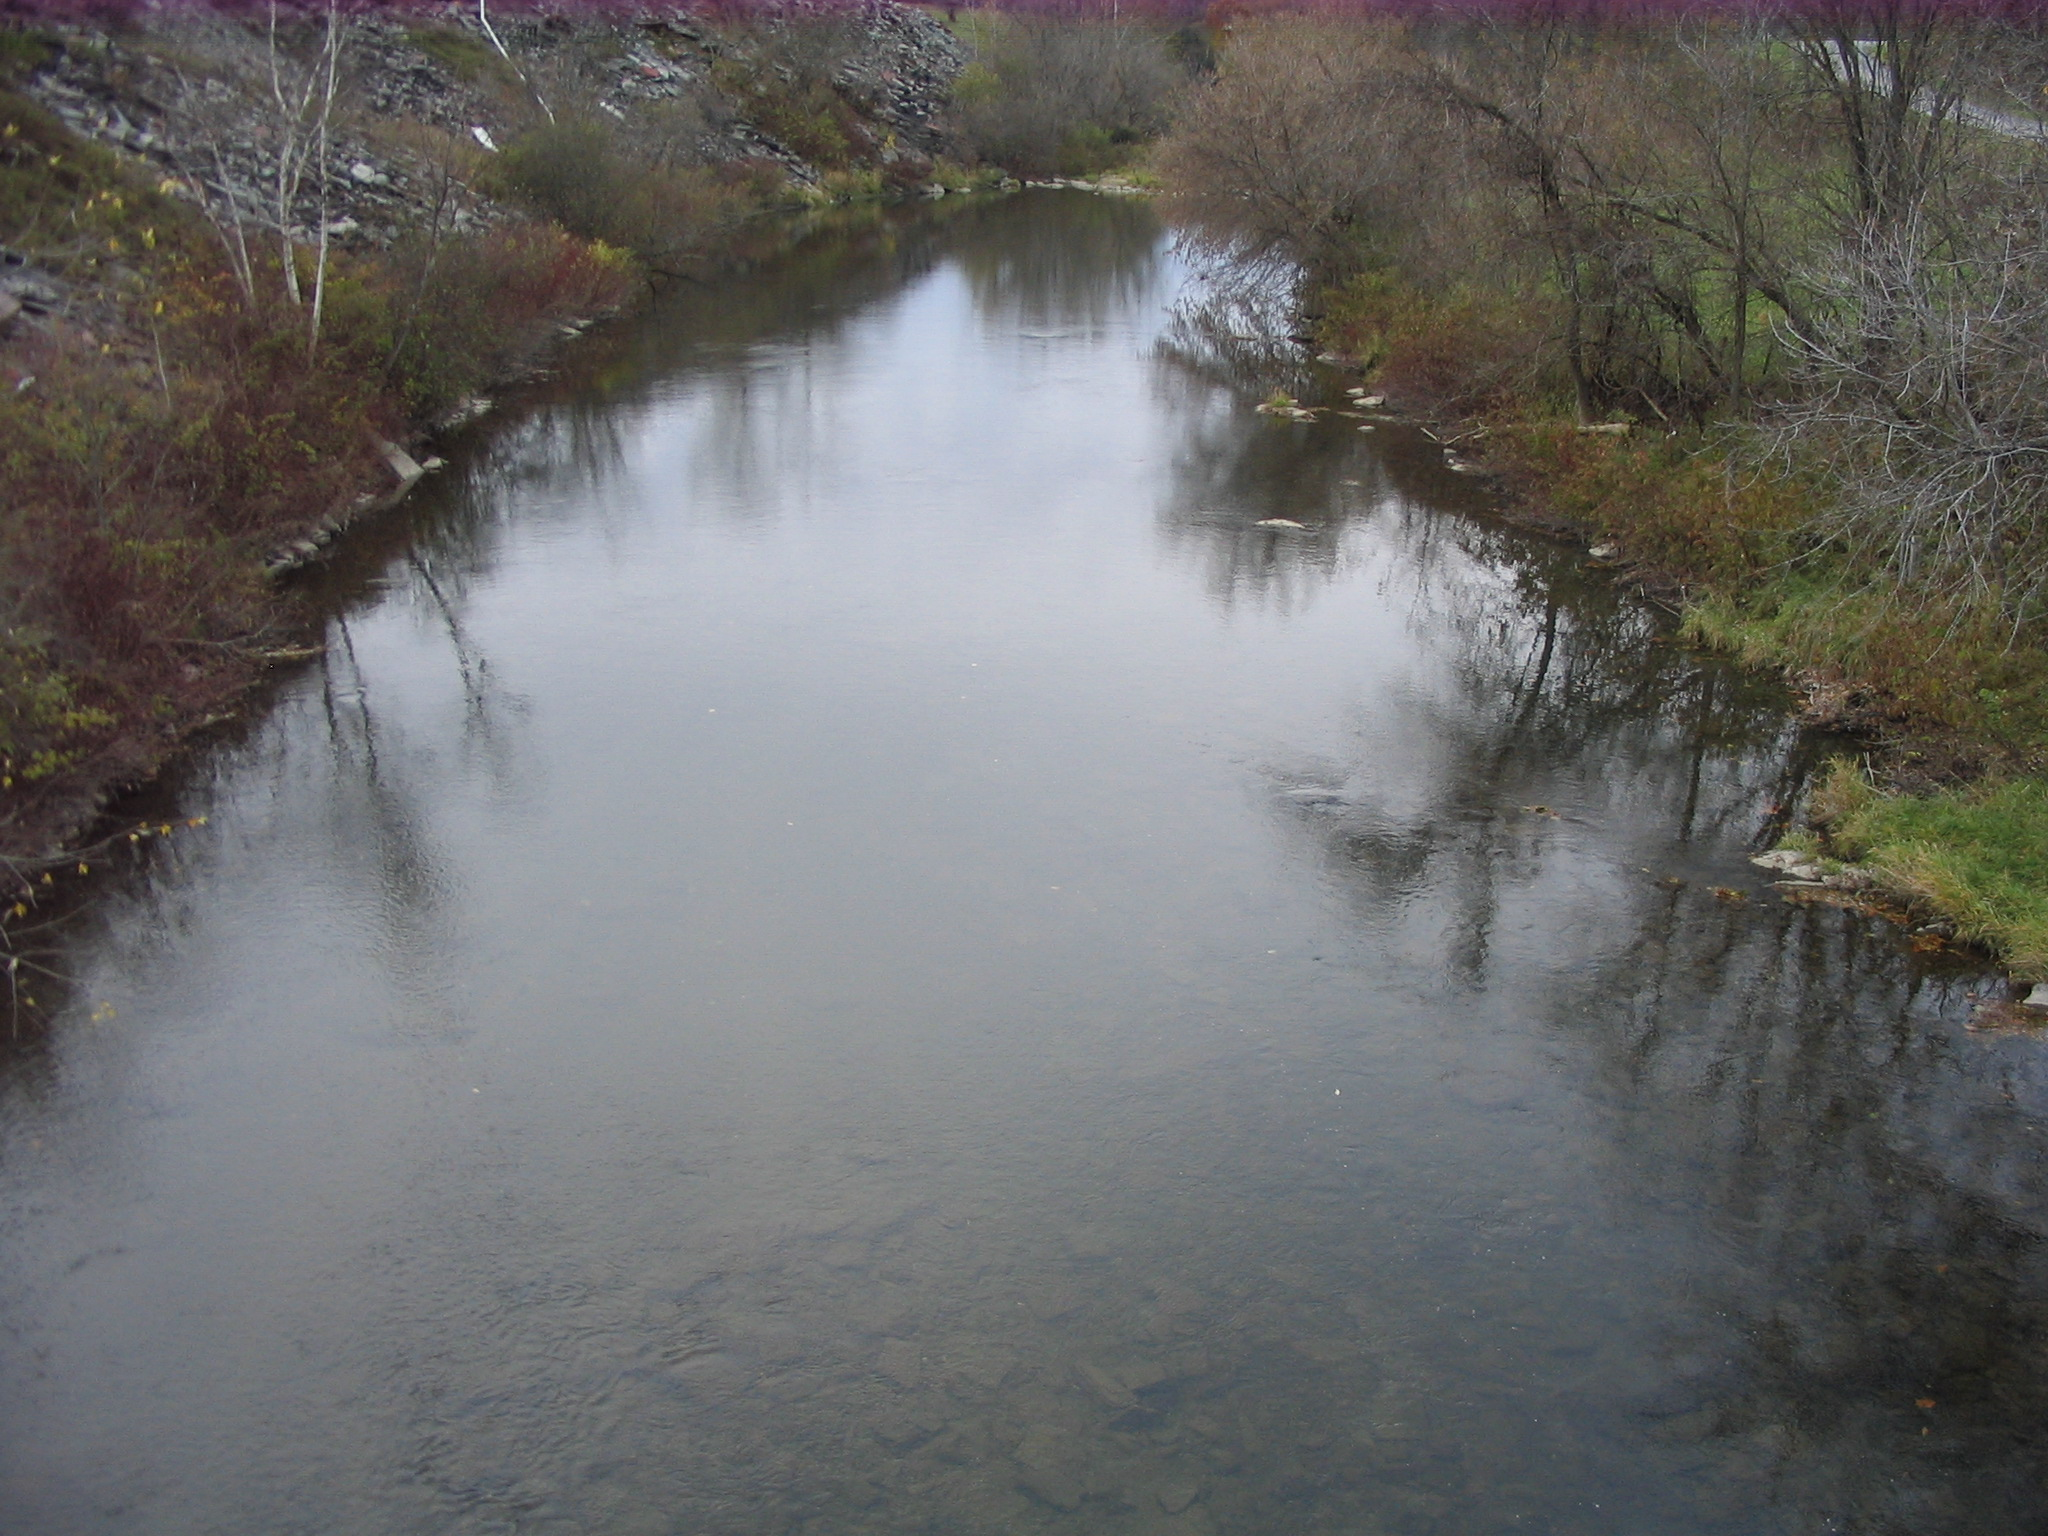 Photograph of the Mettawee River at Granville, NY (GVVN6) looking downstream